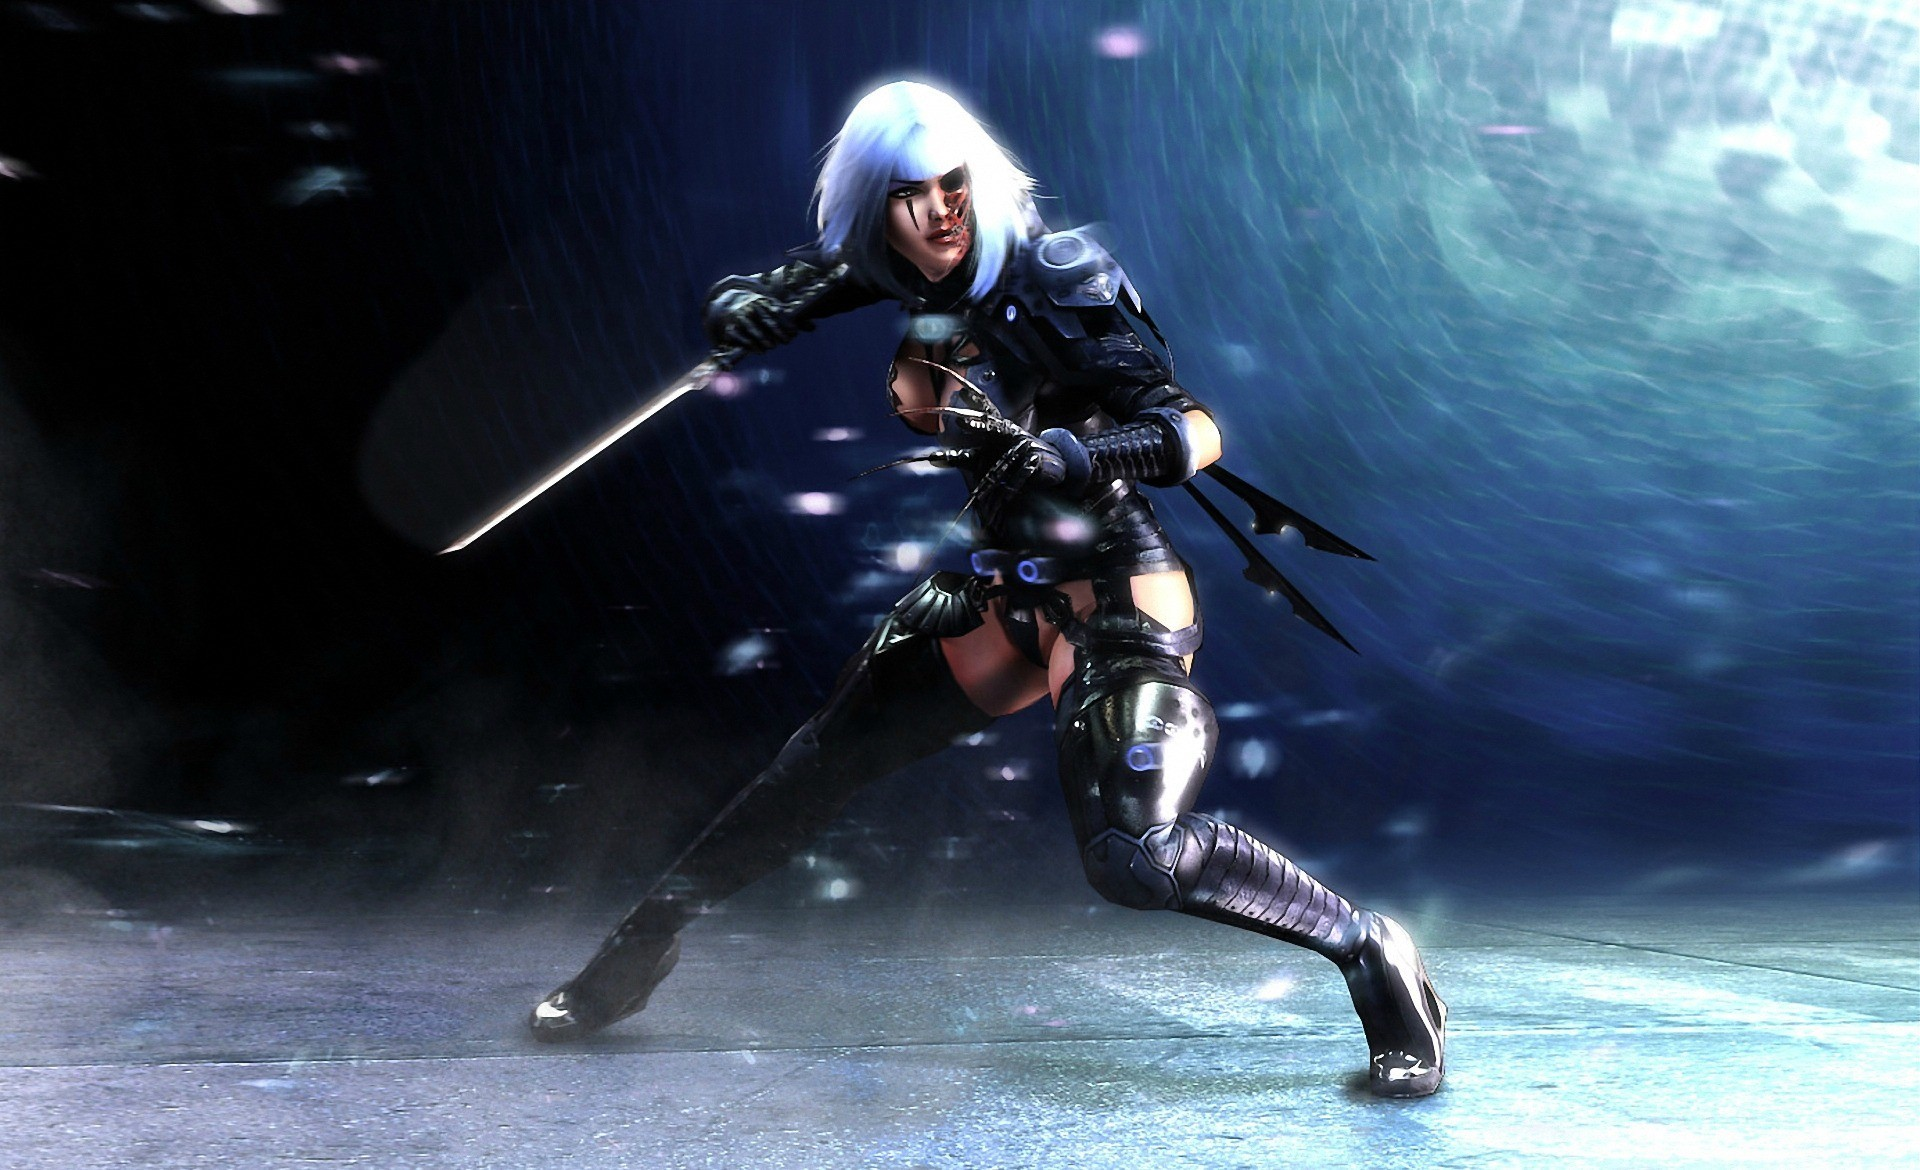 woman assassins cyborgs weapons HD Wallpaper